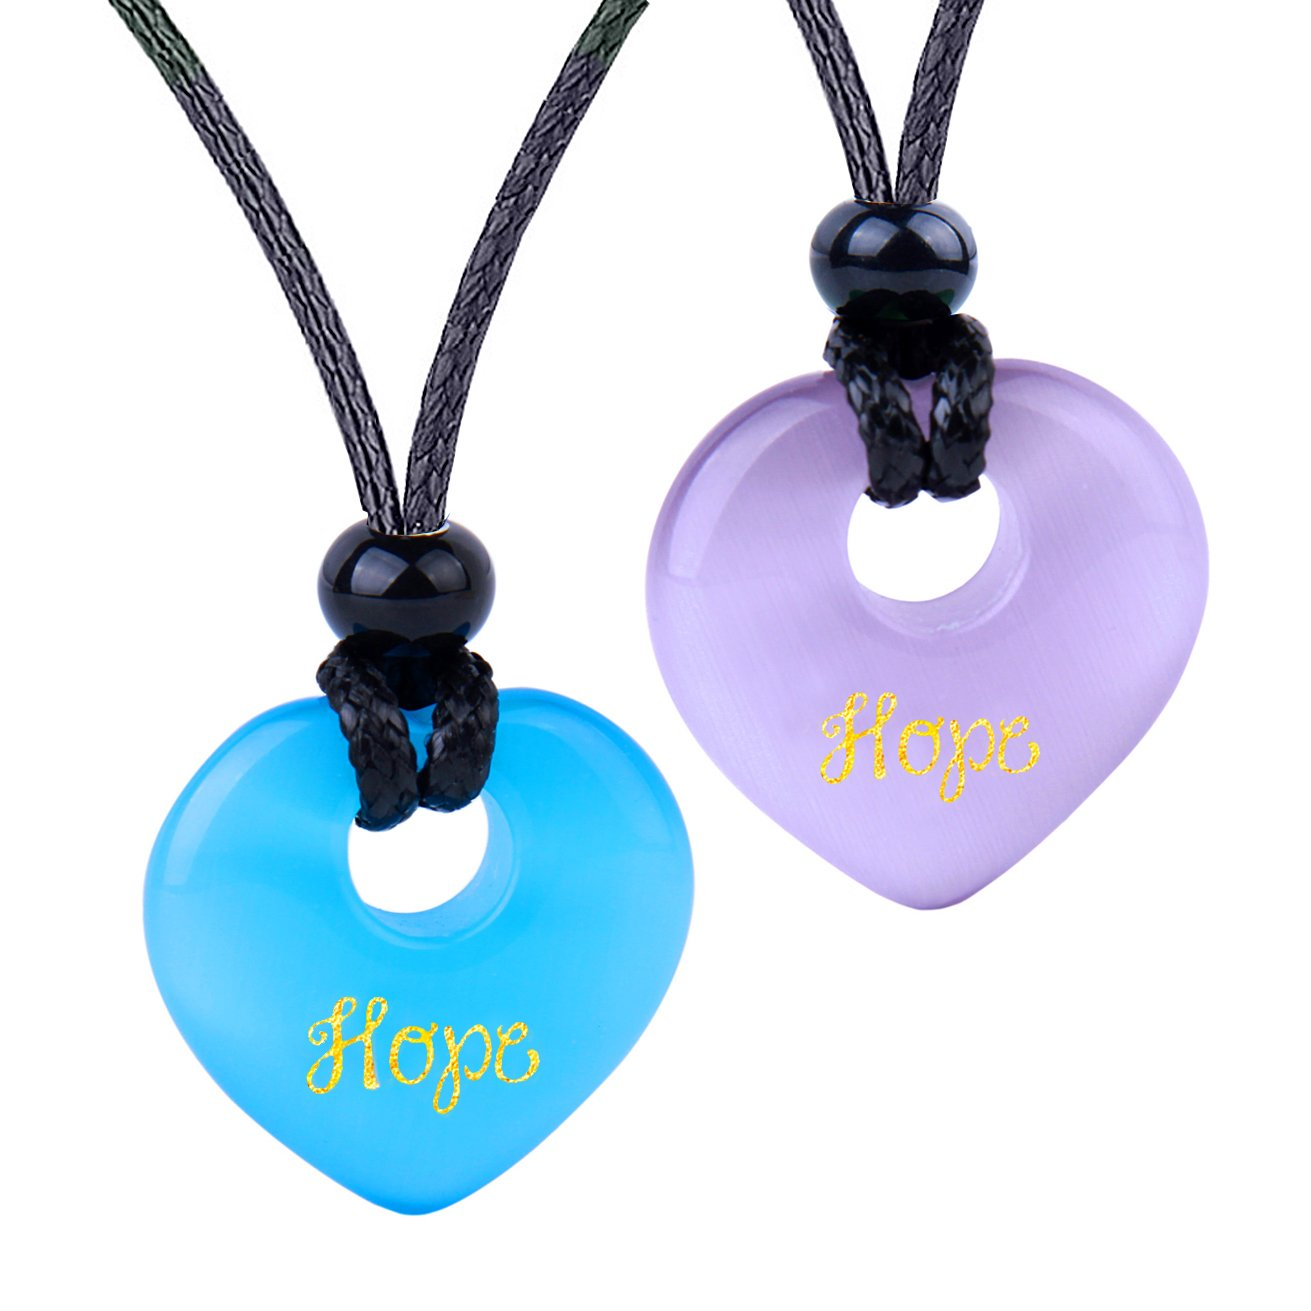 Inspirational Heart Donut Amulets Hope Love Powers Couples BFF Purple Blue Simulated Cats Eye Necklaces